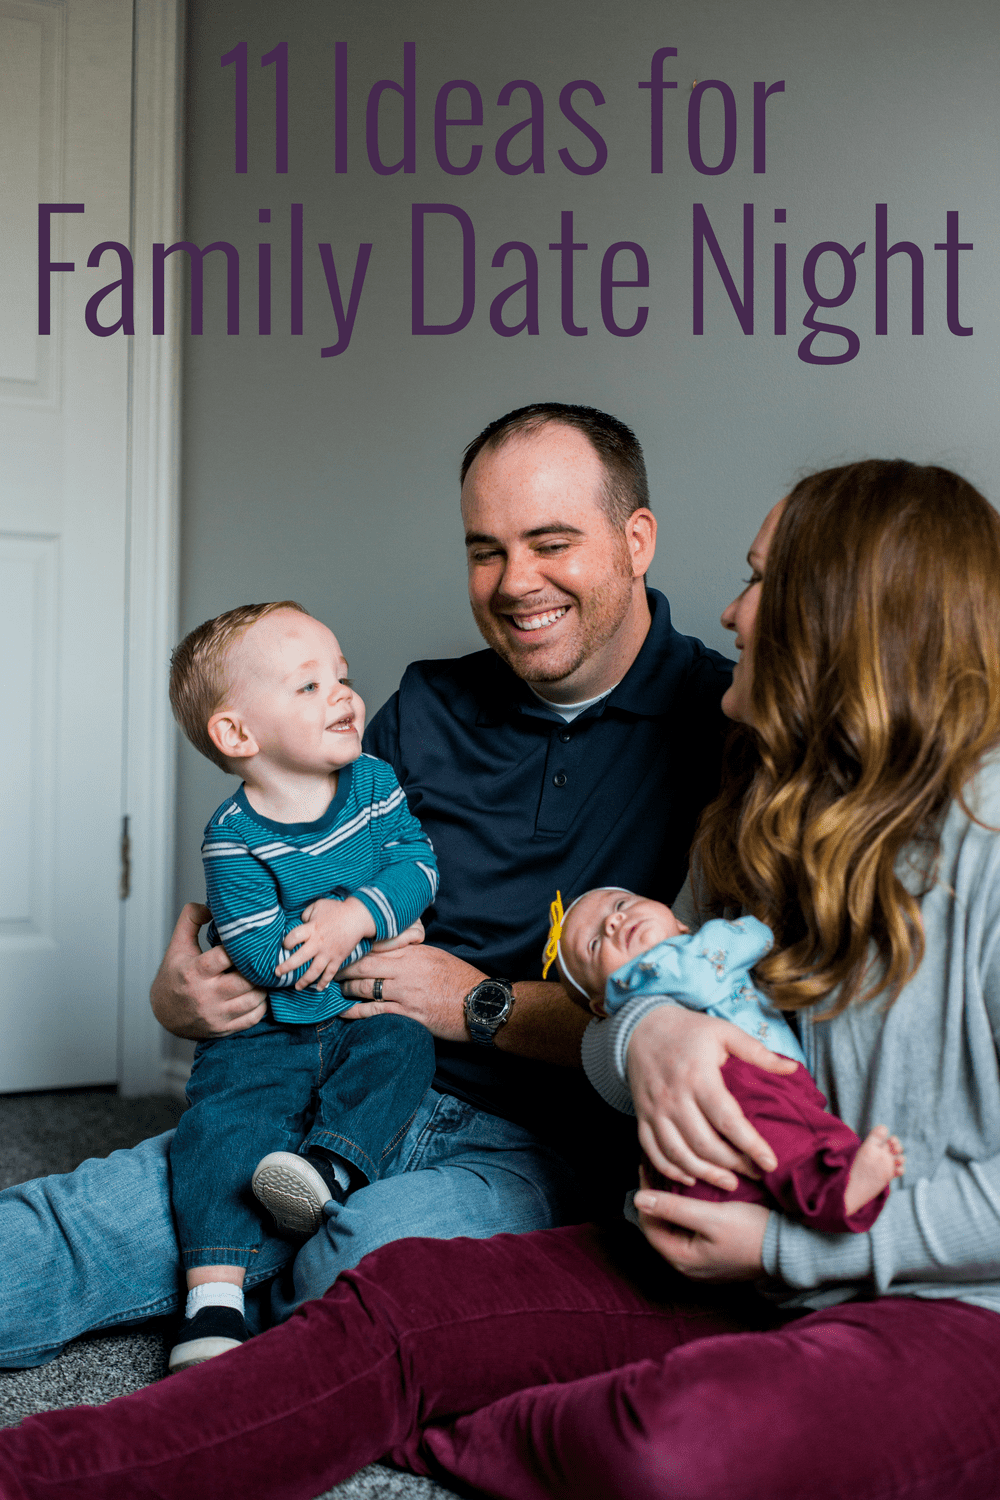 Family date night is just as important as date night is for your marriage. Have fun as a family this week with these fun ideas!